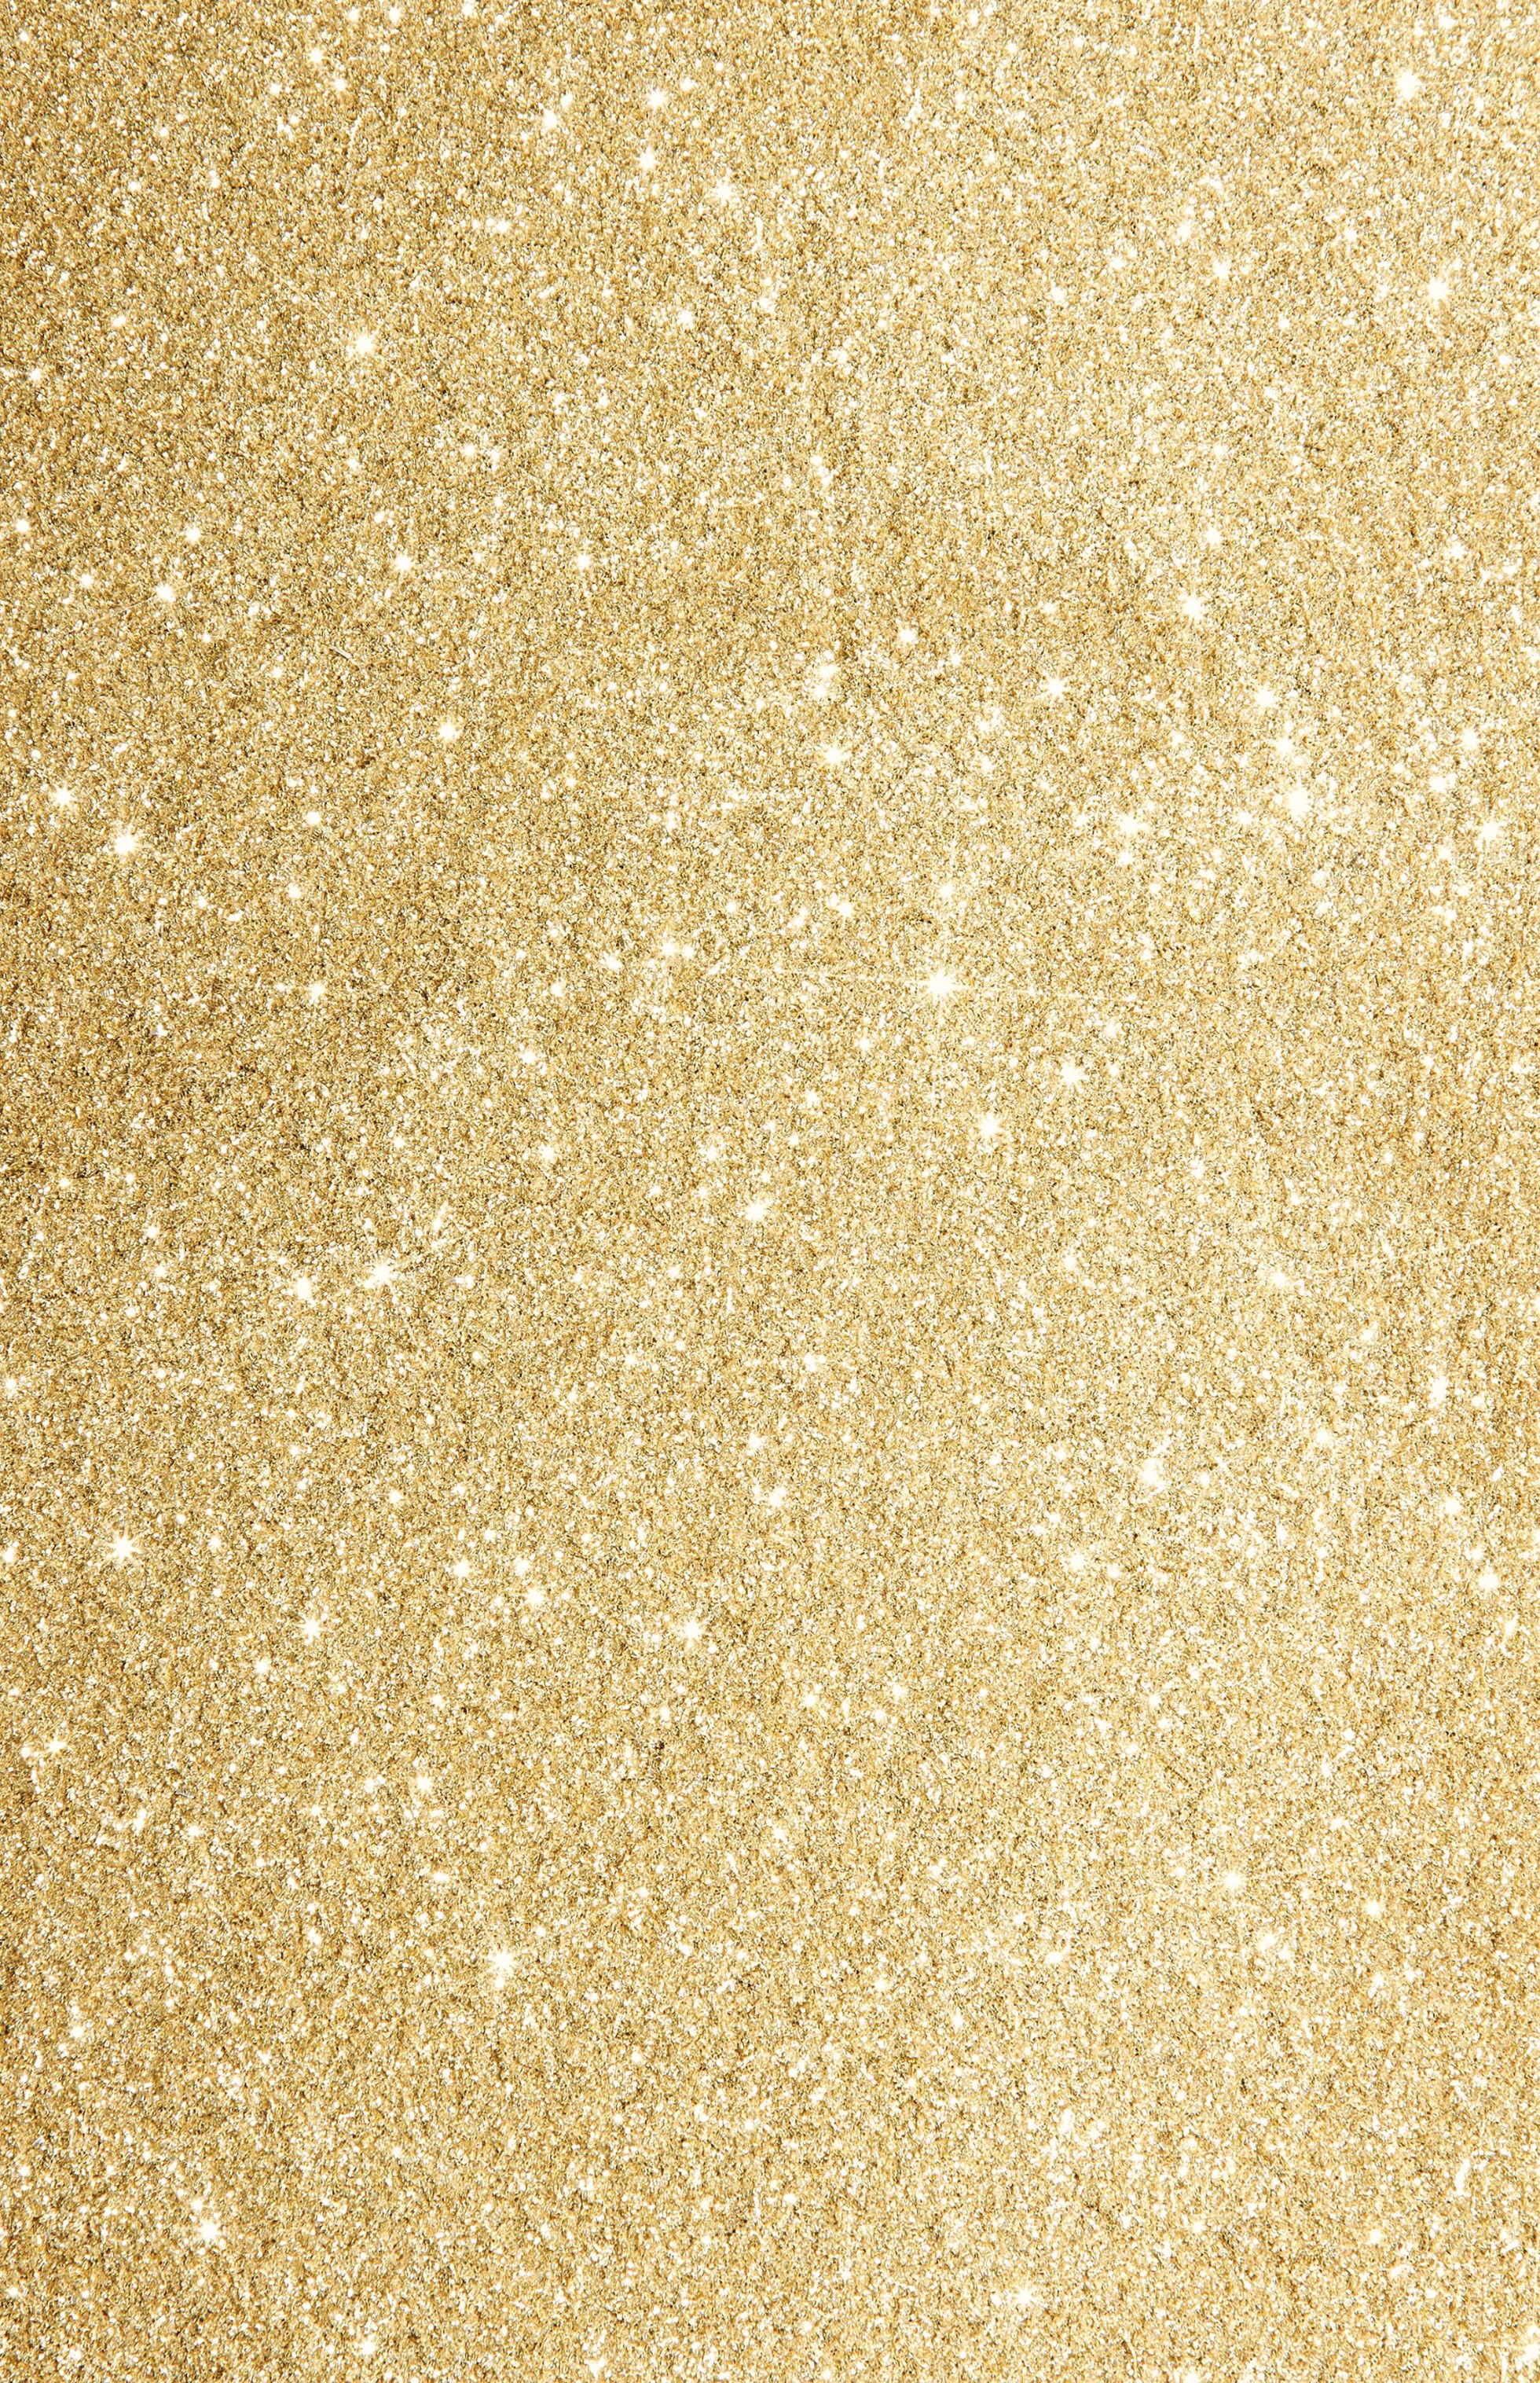 3000x2000 Glitter Pictures 46